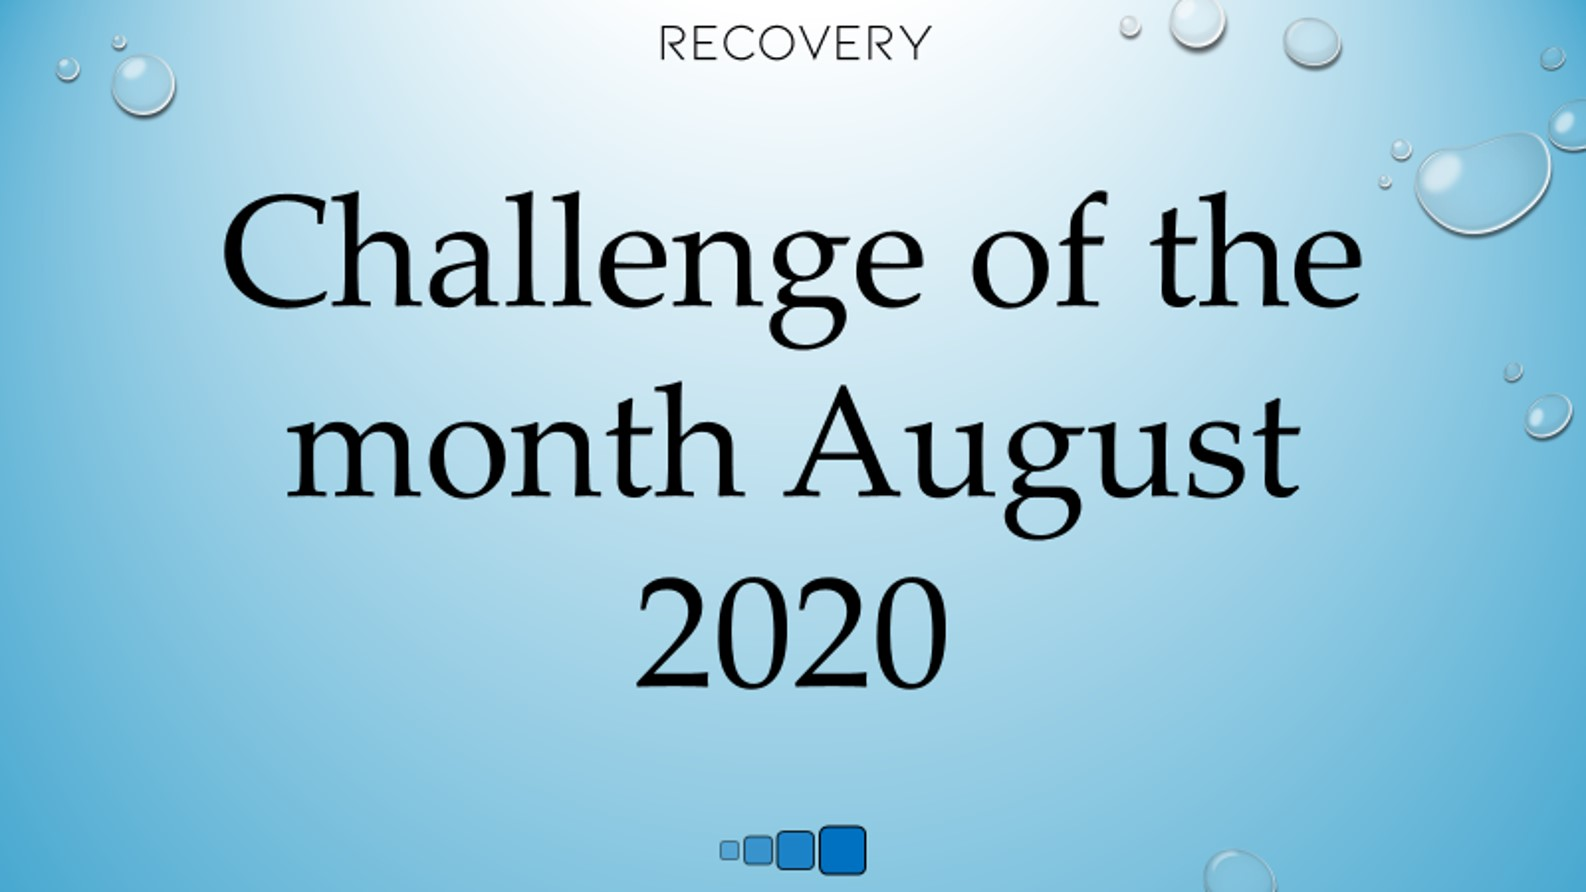 challenge of the month August 2020